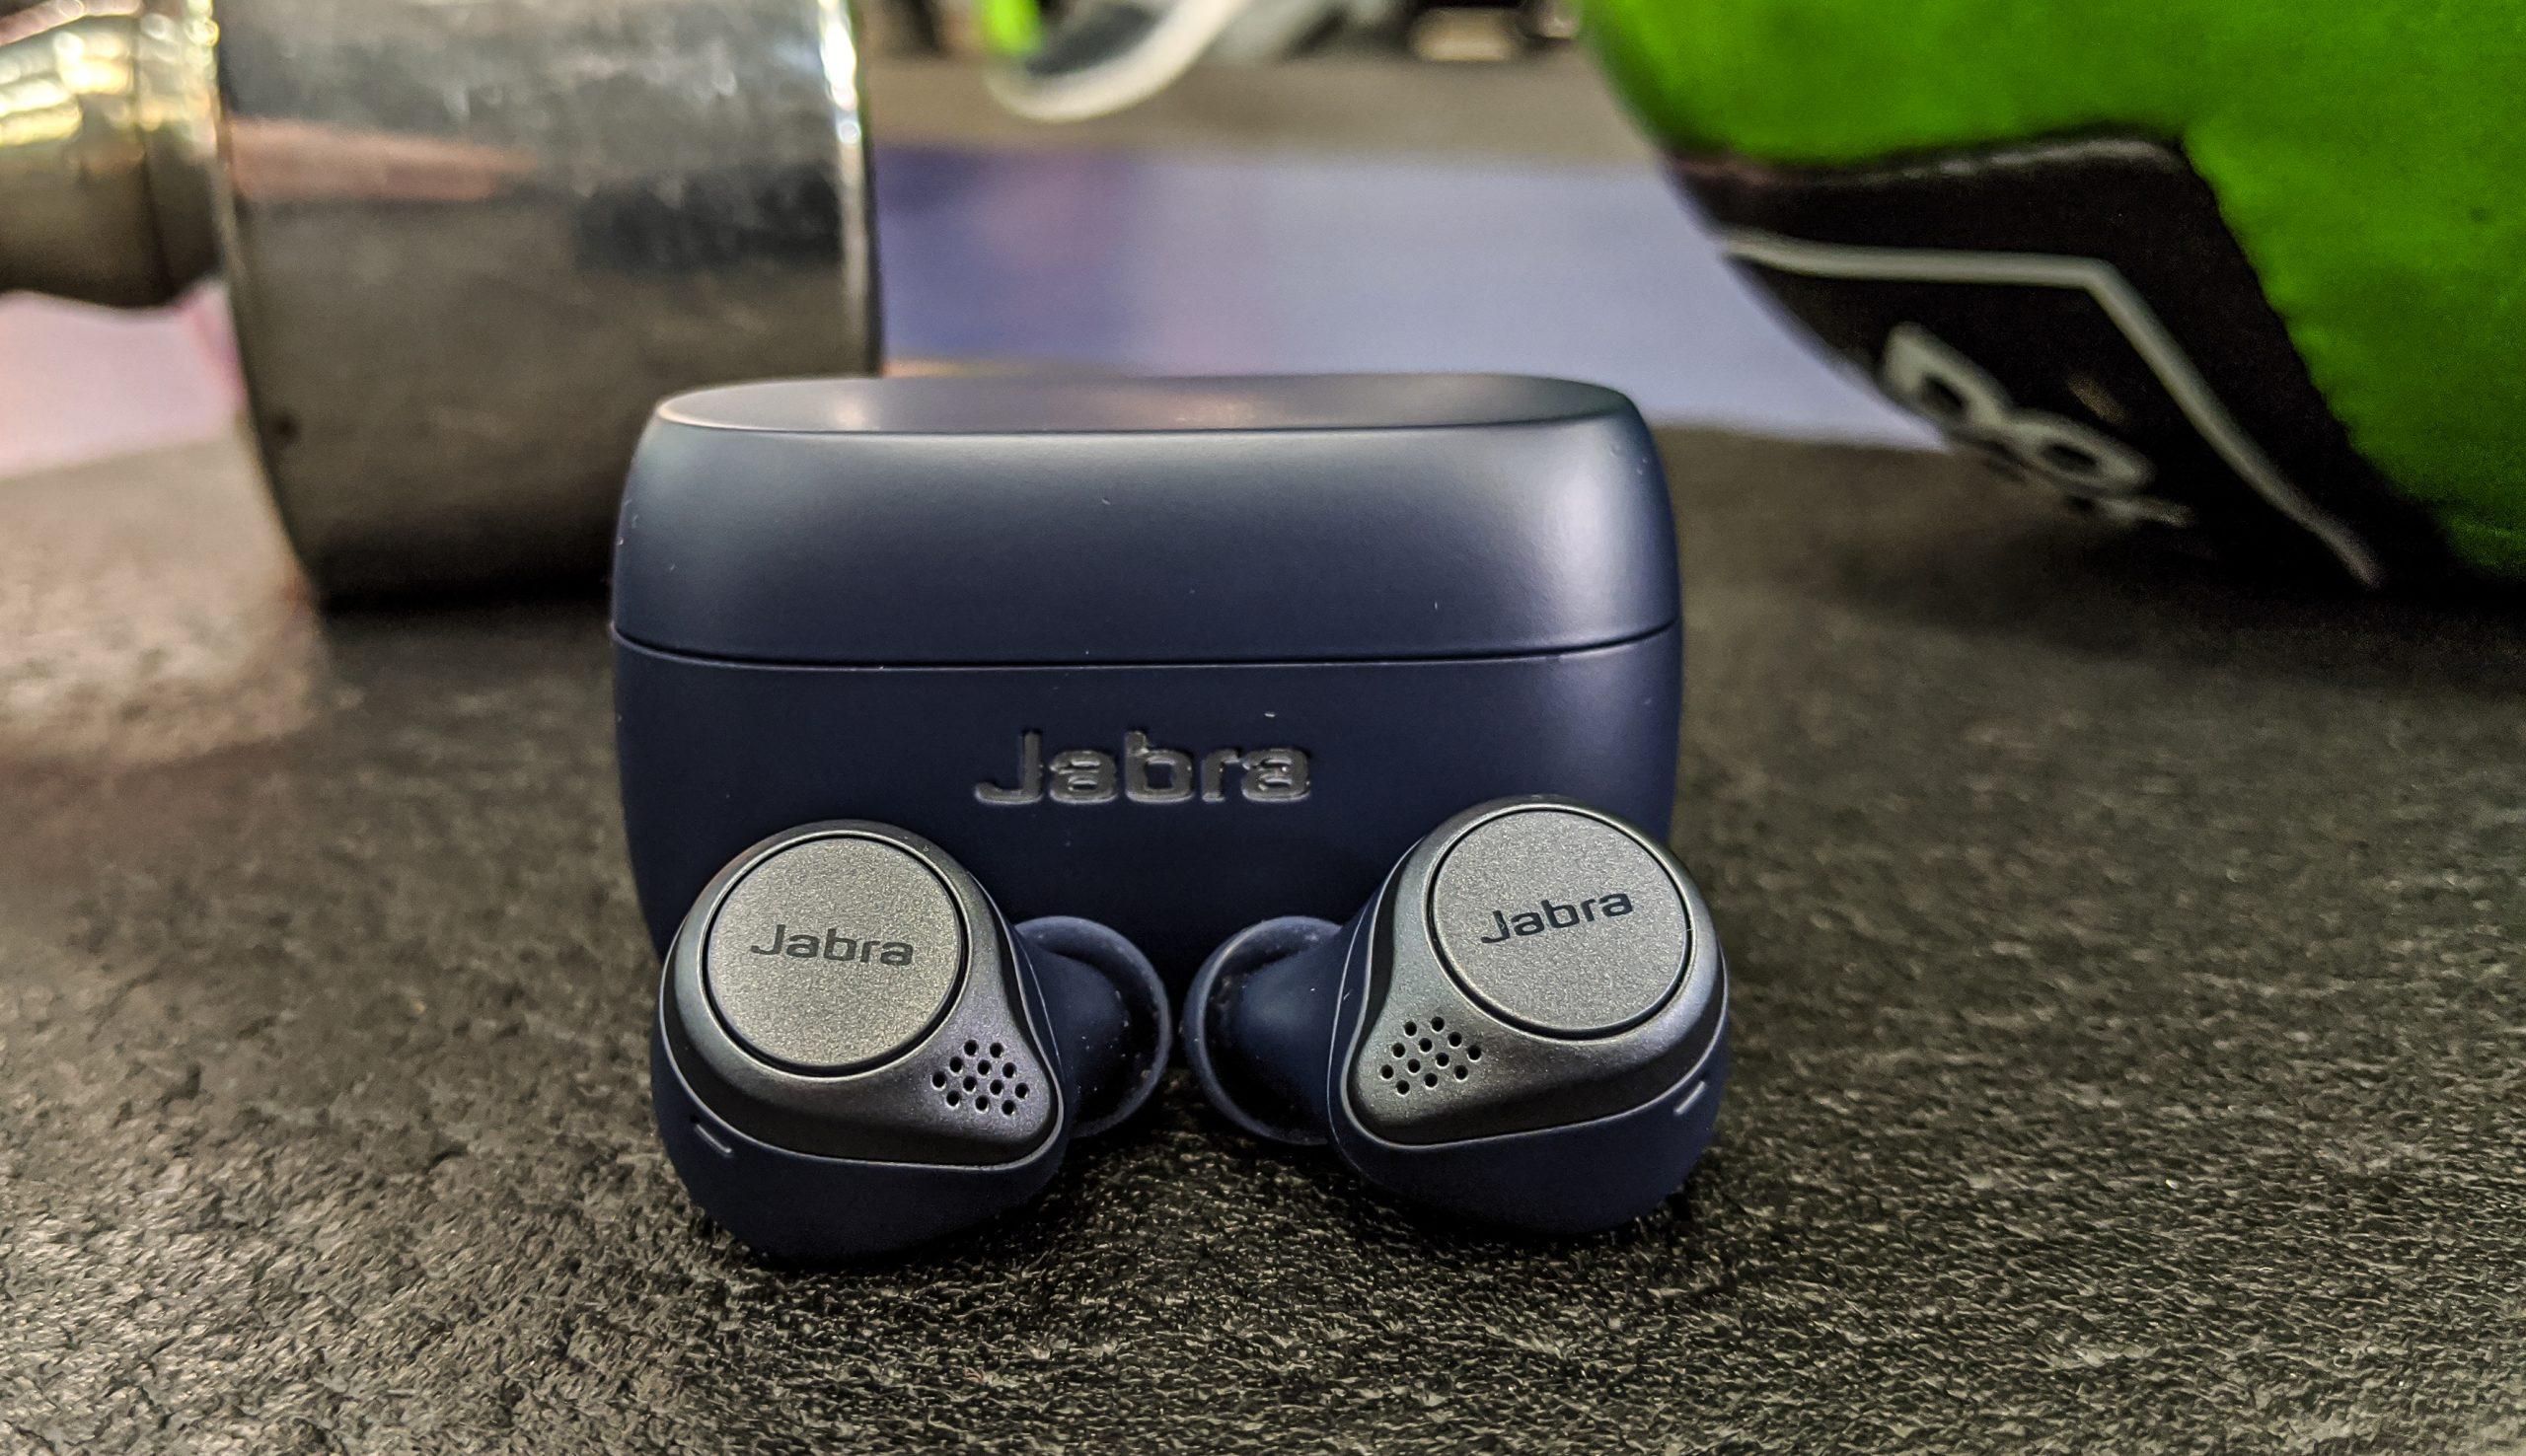 Jabra Elite Active 75t review -true wireless headphones for athletes that adapt to everyone's hearing